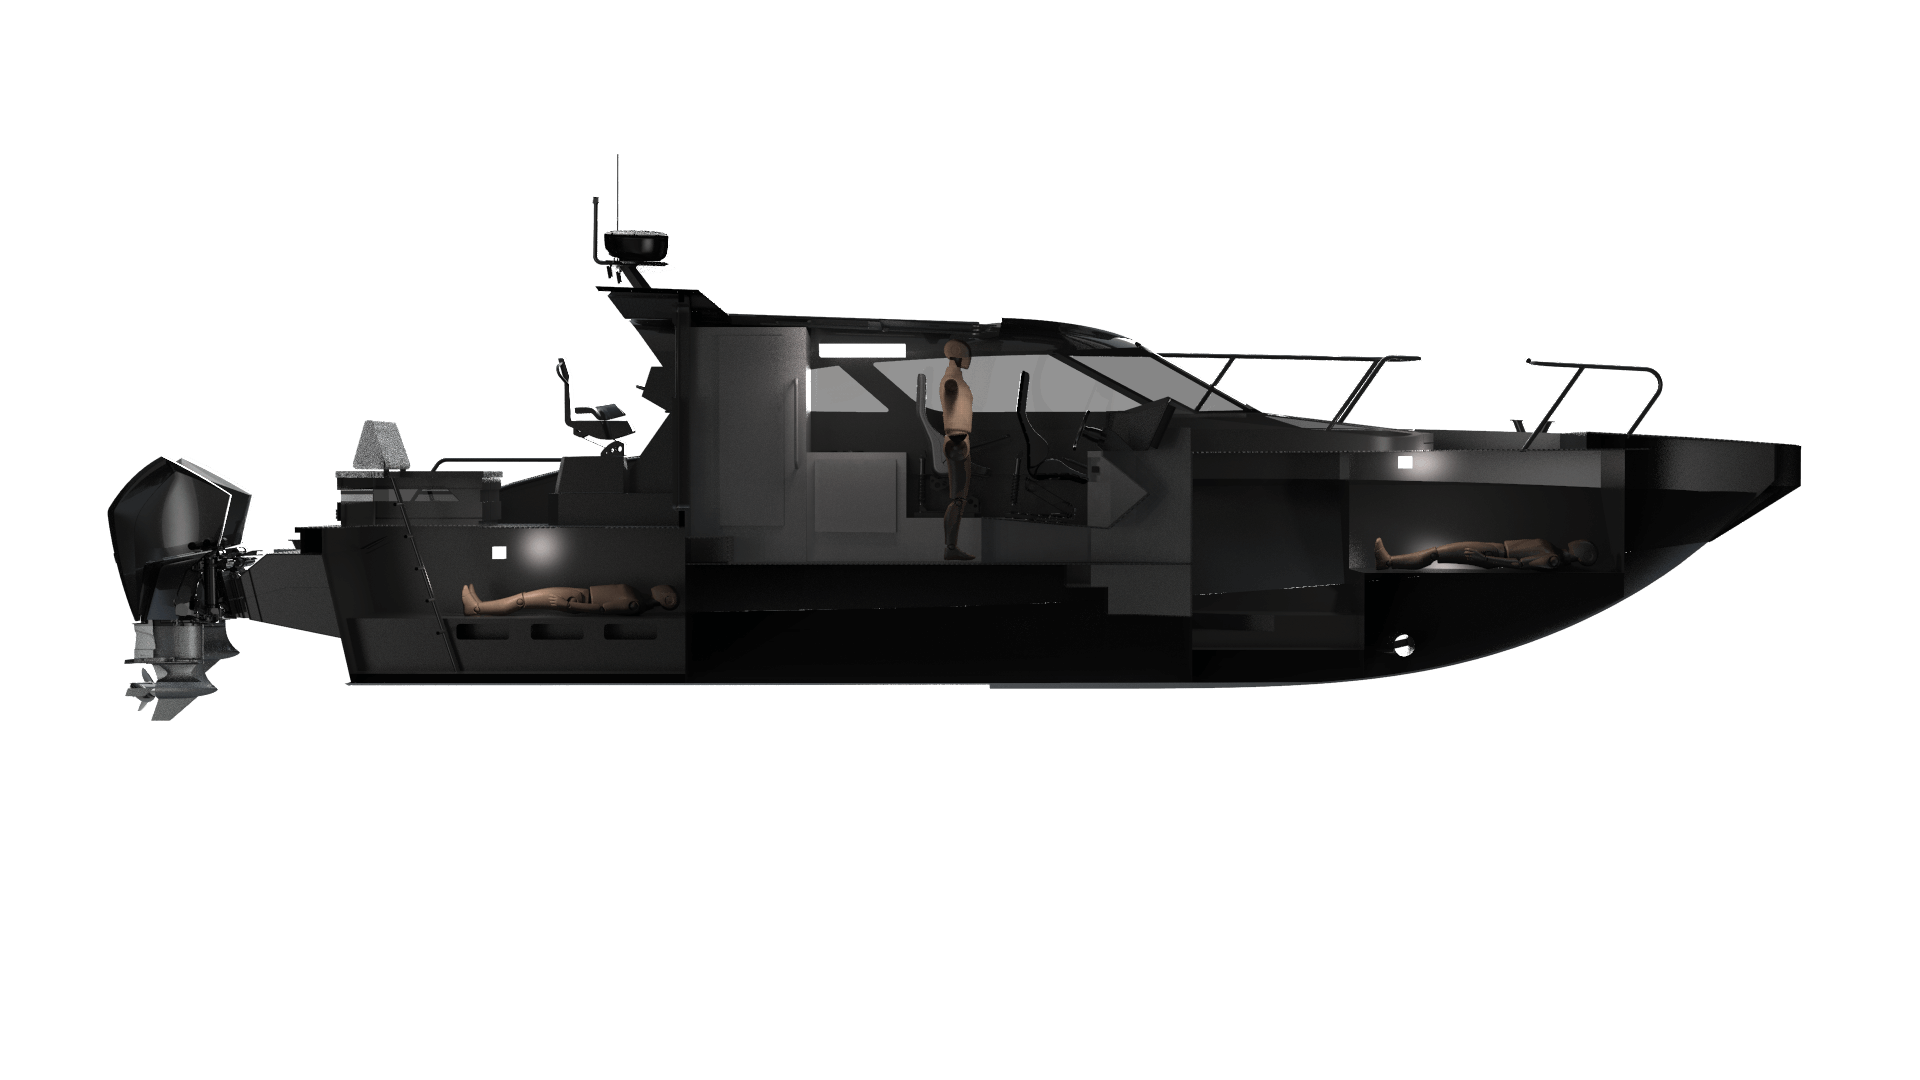 m12 rendered model example